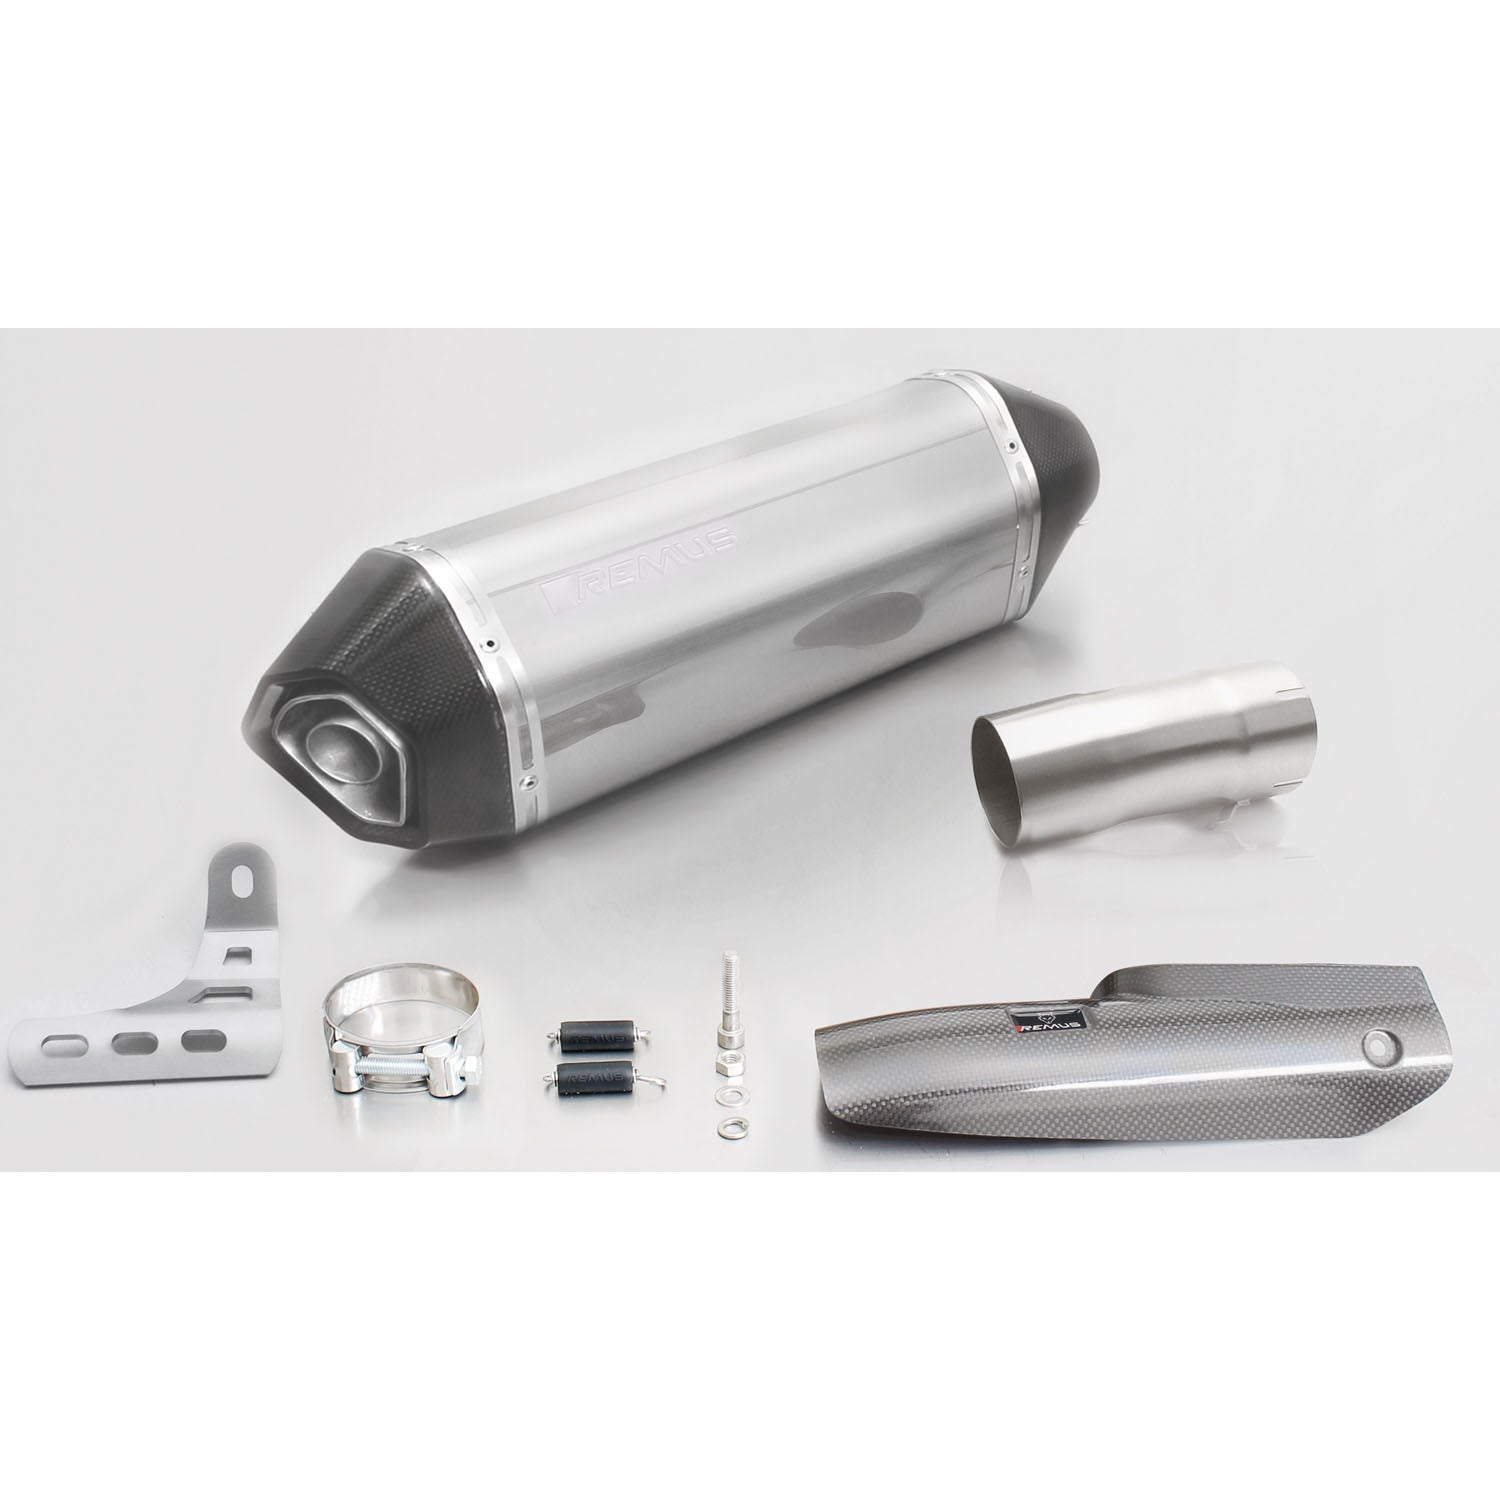 Hexacone Stainless Steel Slip-On Exhaust - BMW R1200R/RS 17-19